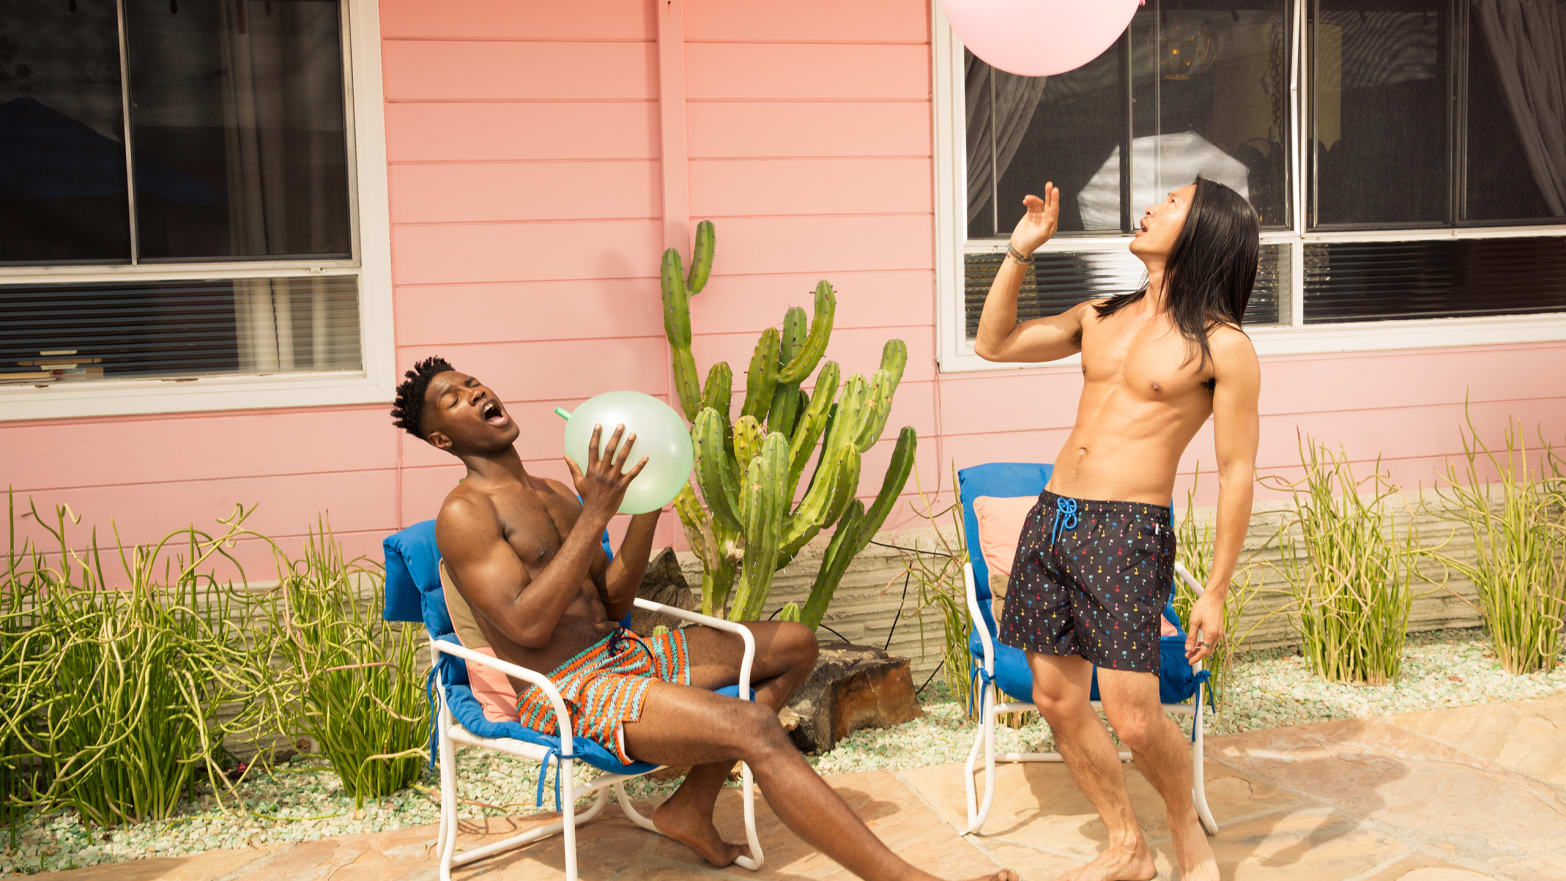 890ee6cd32 The 7 Best Men's Bathing Suits and Boardshorts To Consider This Summer